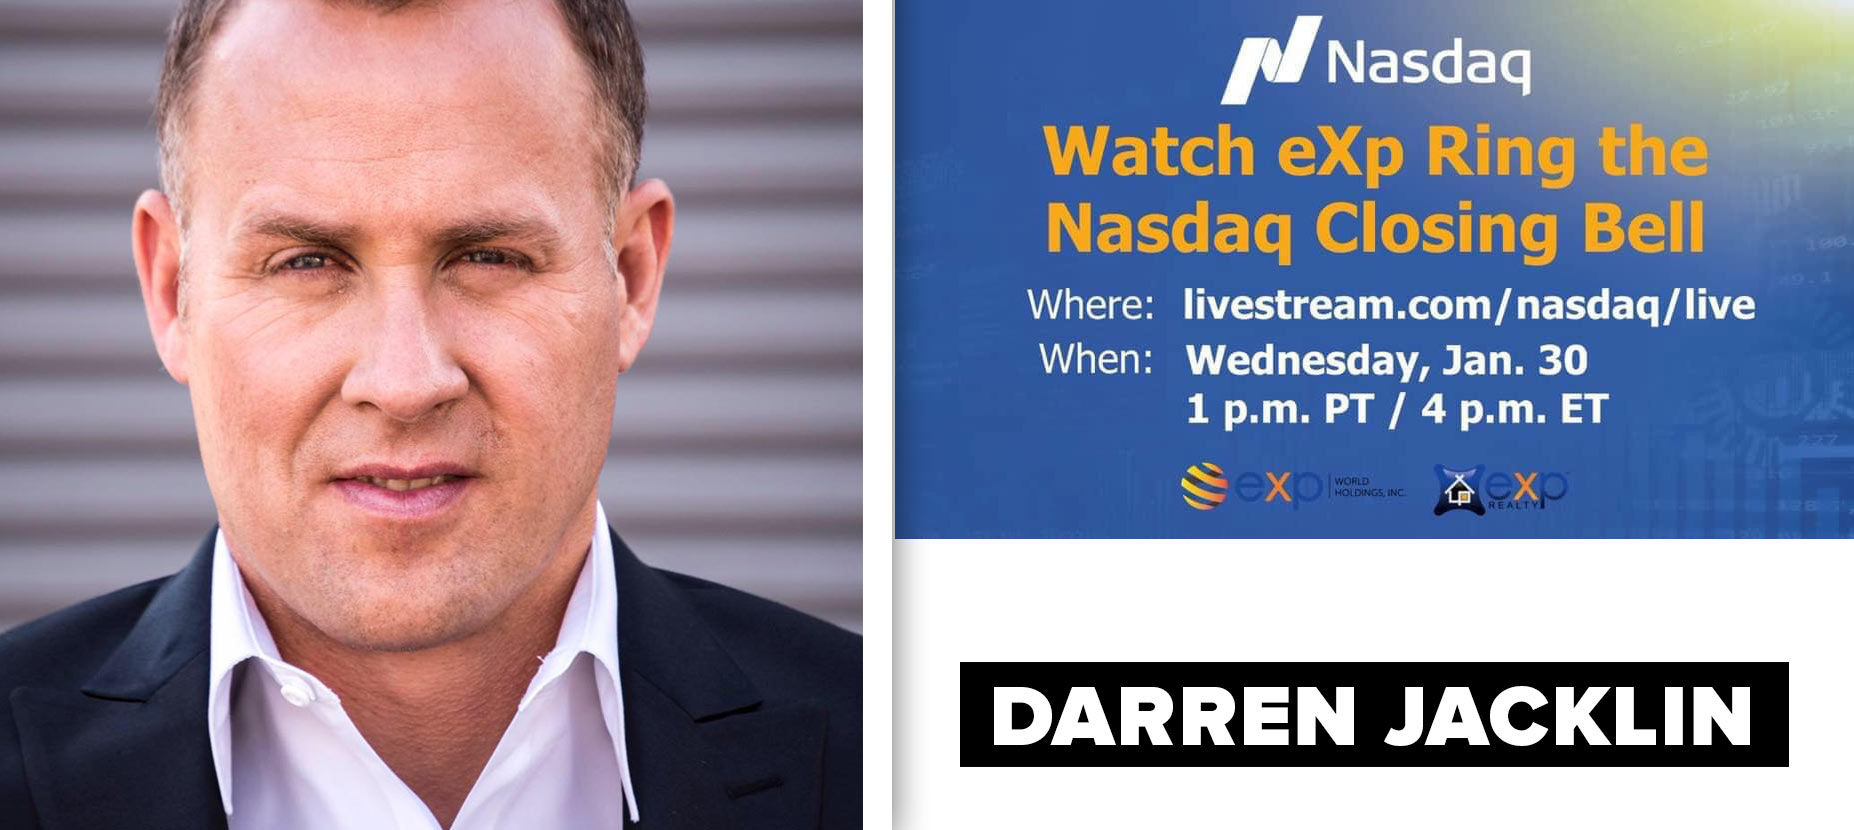 Darren Jacklin to ring the NASDAQ bell on January 30th